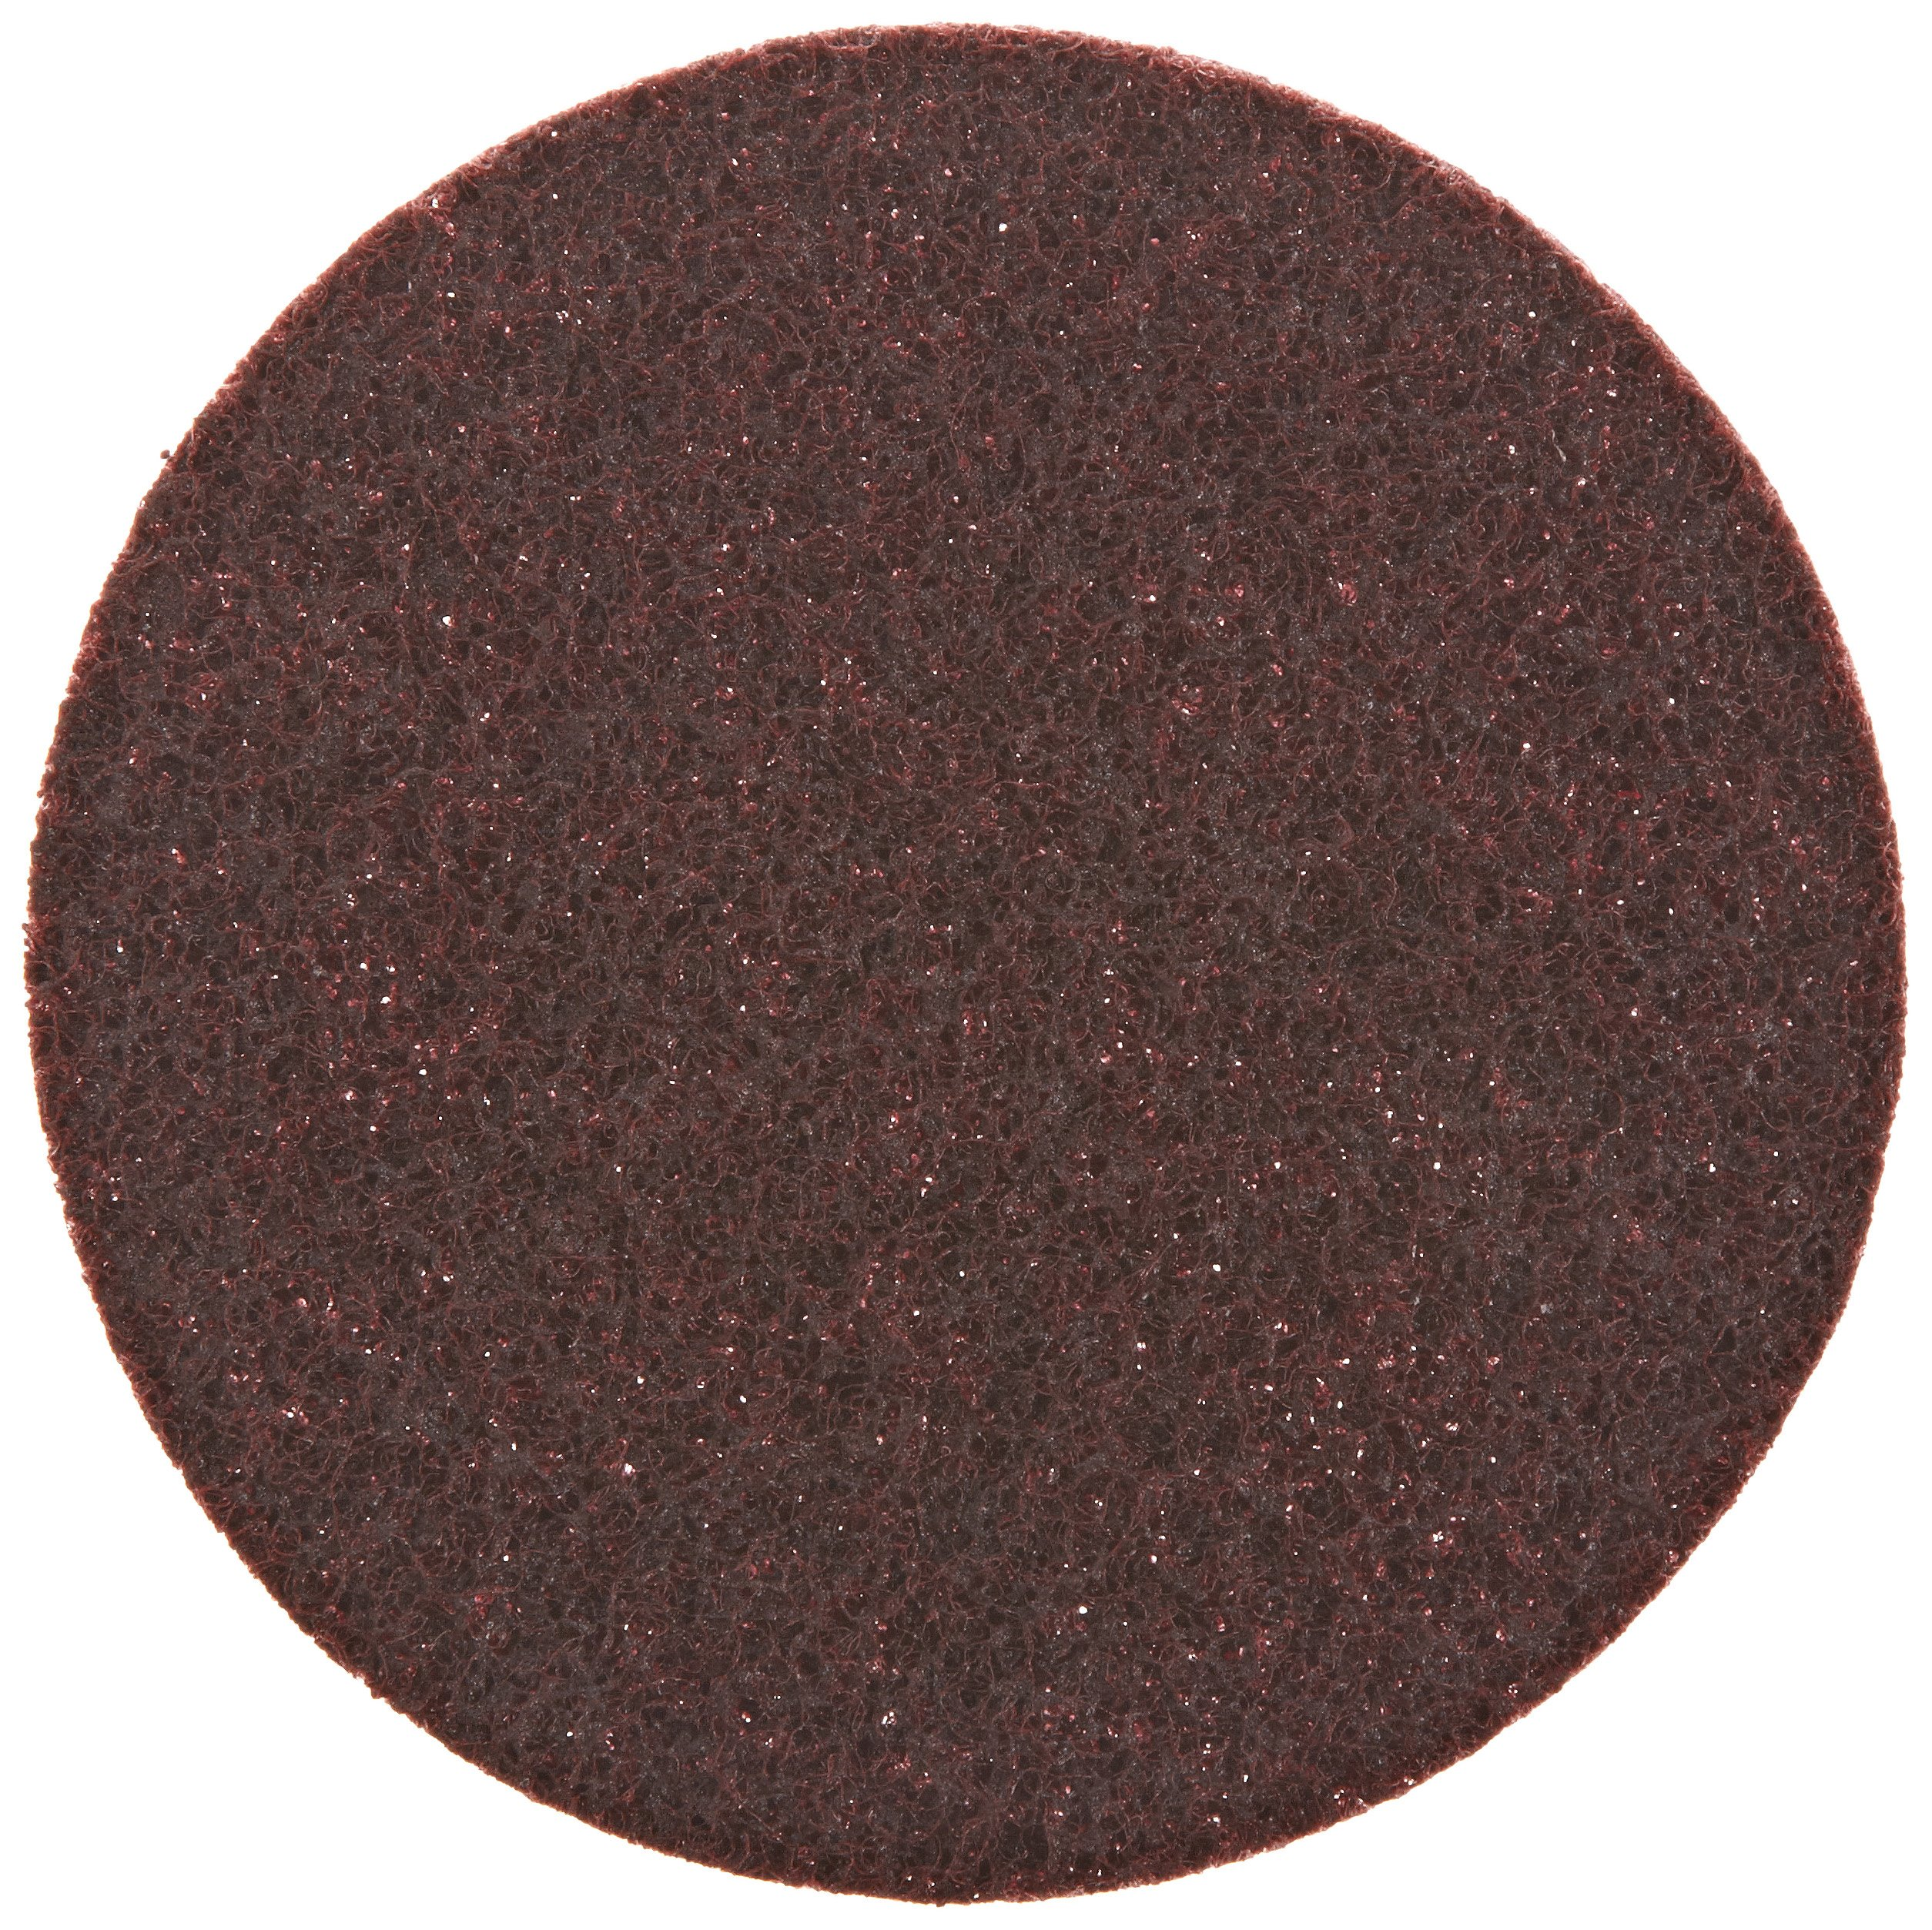 Scotch-Brite(TM) Surface Conditioning Disc, Hook and Loop Attachment, Aluminum Oxide, 5 Diameter, NH A Medium (Pack of 50)